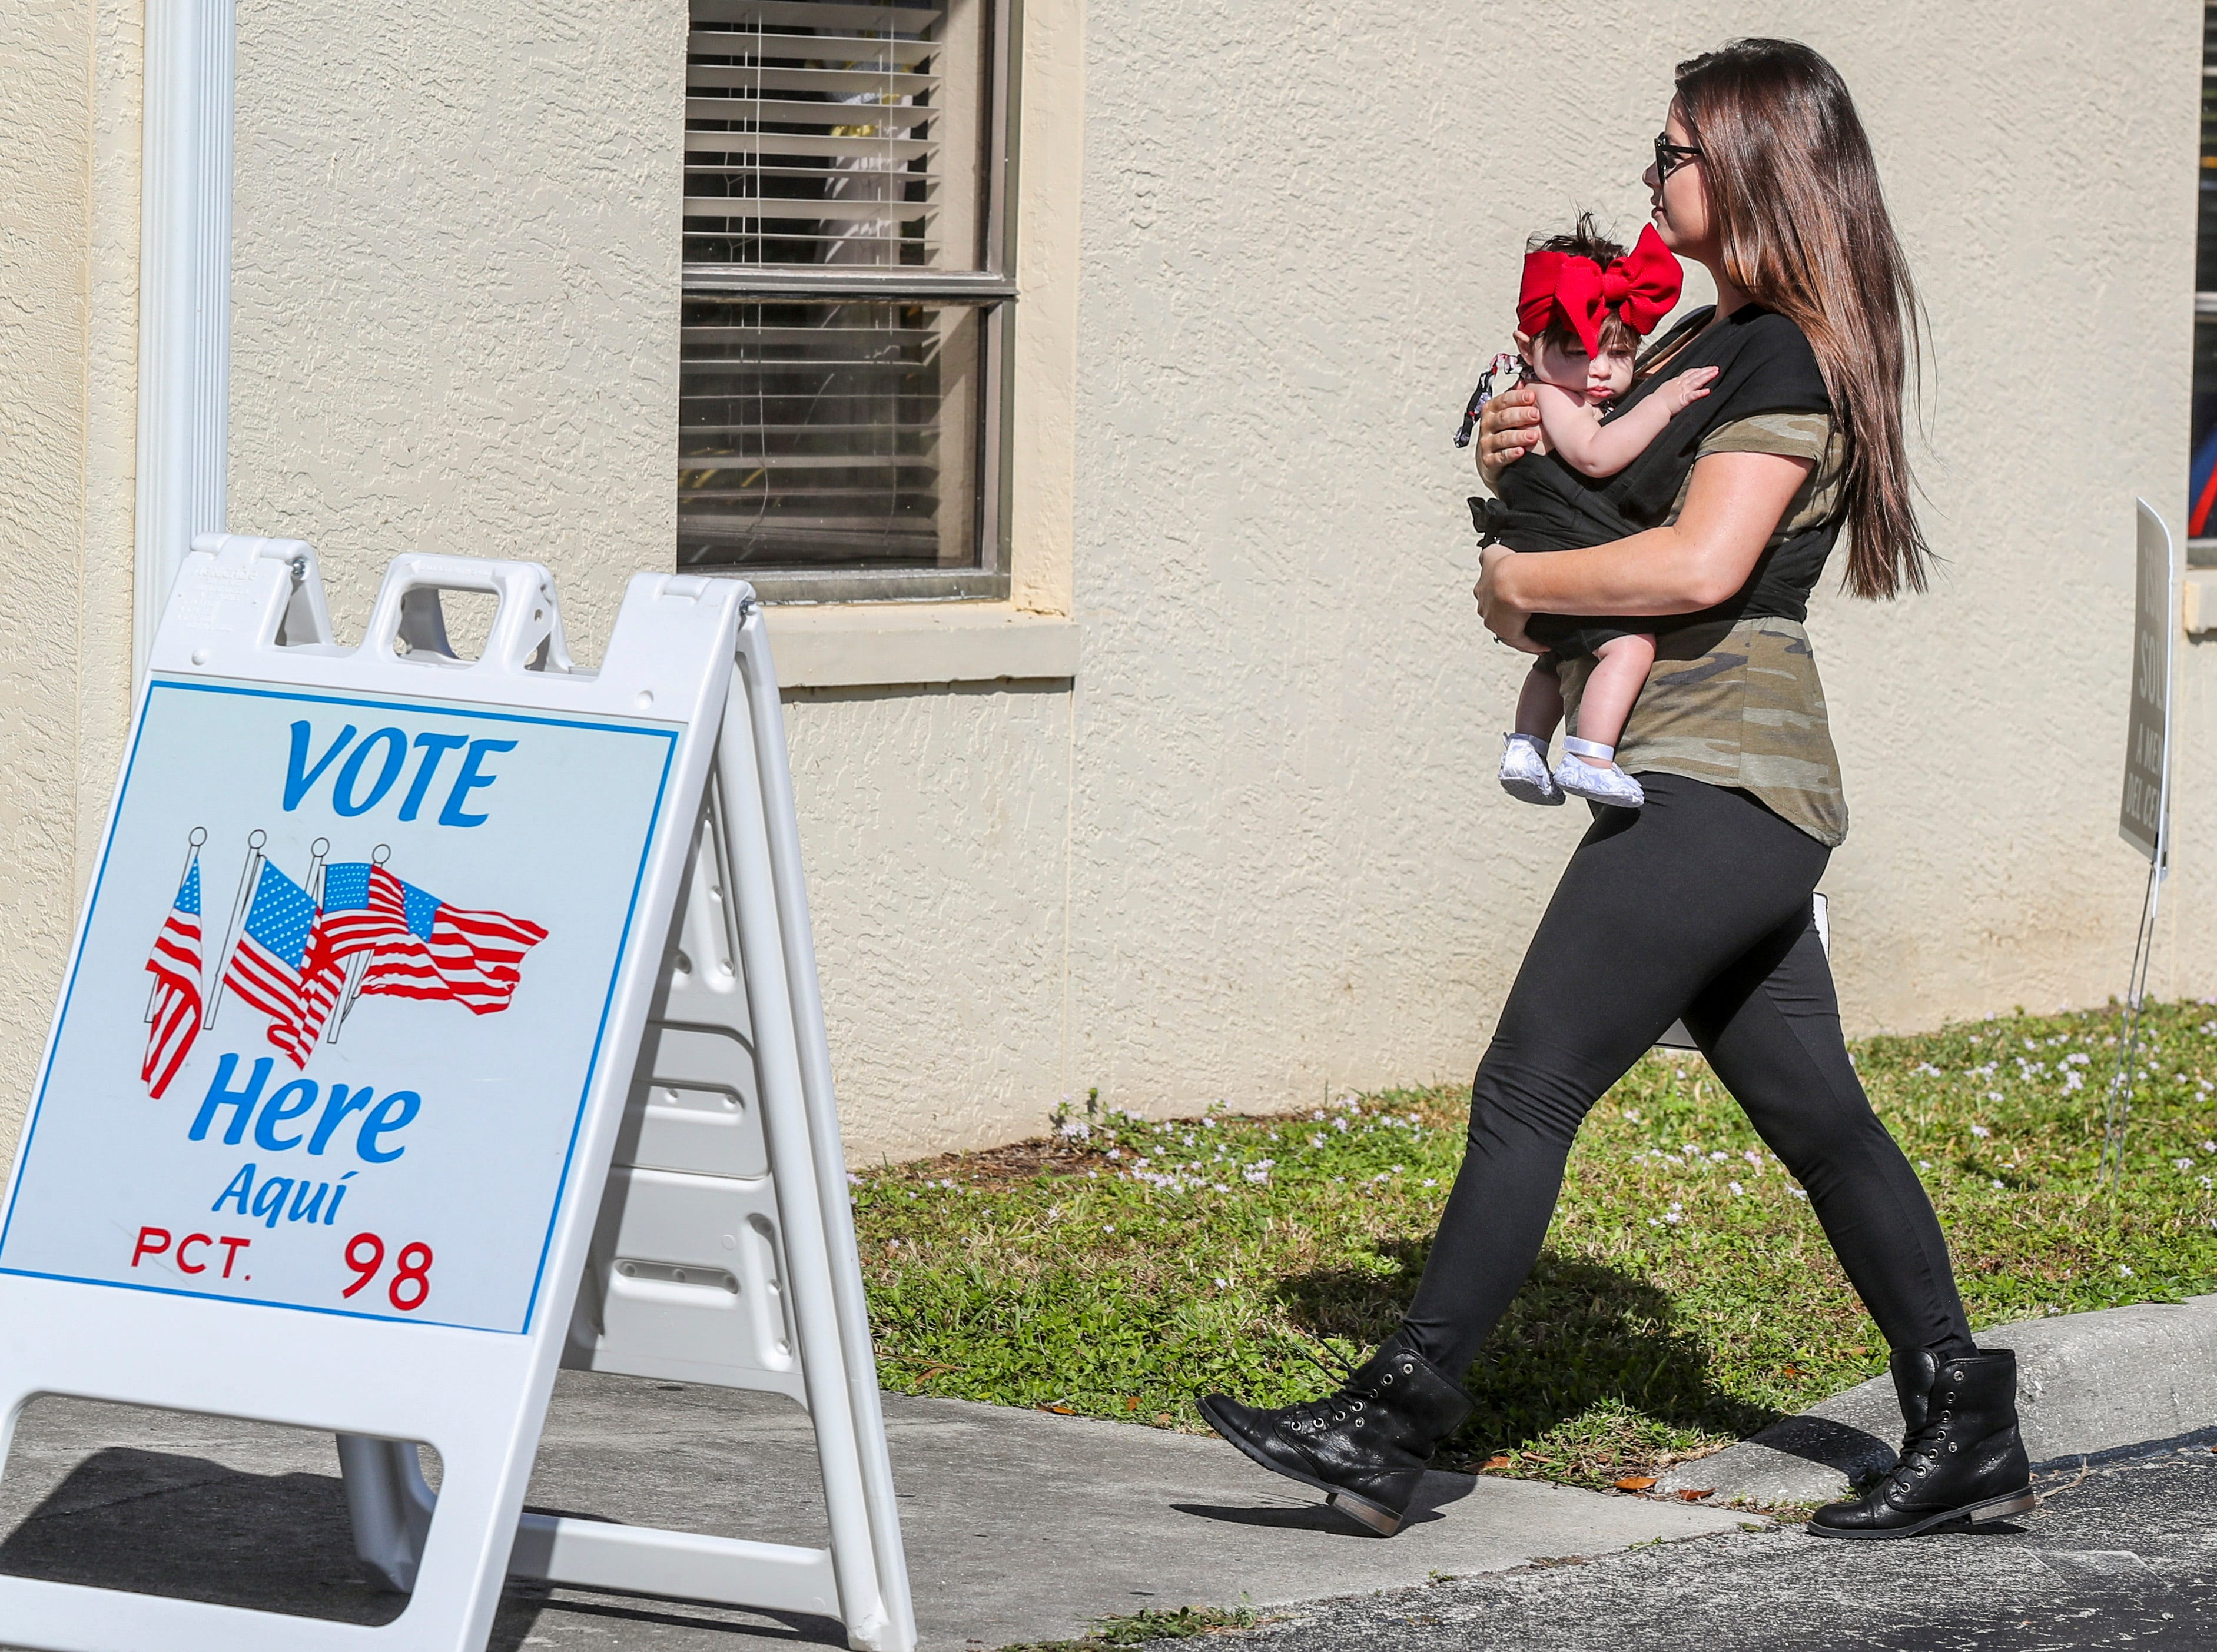 A voter walk into Precinct 98 in Cape Coral to vote with her young daughter in tow.